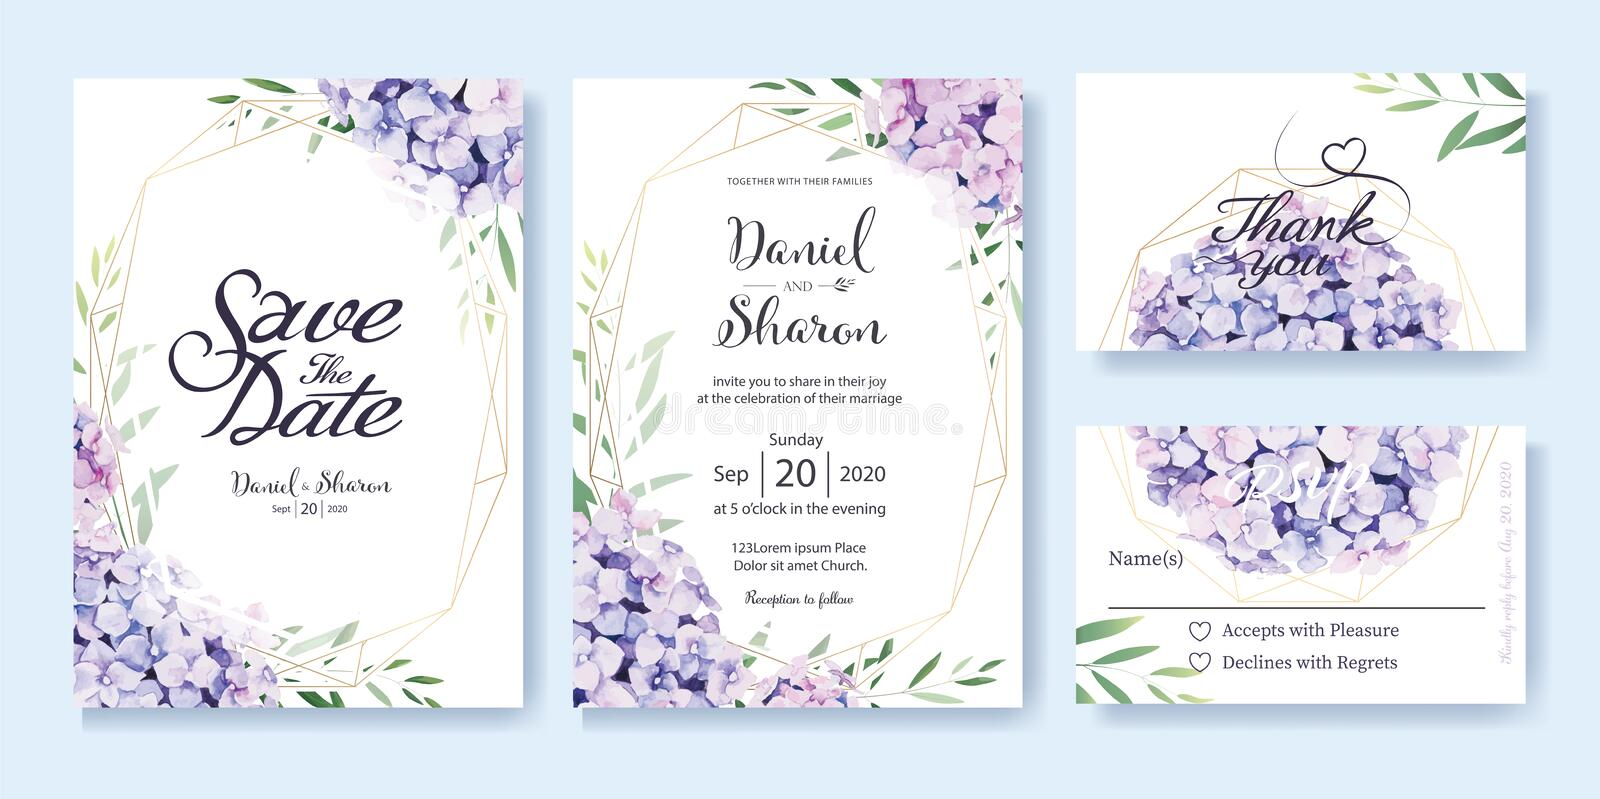 Wedding Invitation, save the date, thank you, RSVP card Design template. Vector. hydrangea flowers, olive leaves. Watercolor style.  royalty free illustration